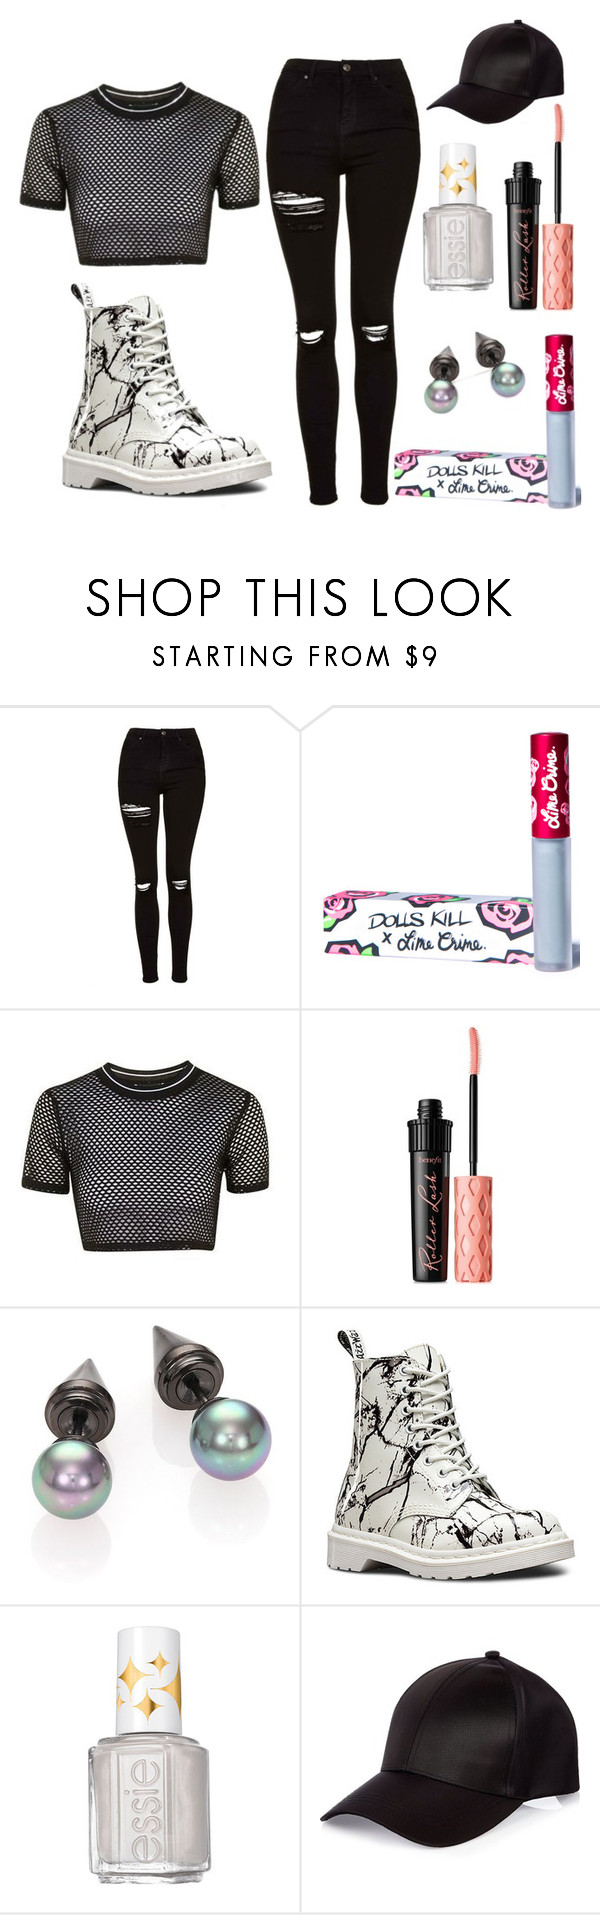 """Untitled #16"" by arrabella-rose ❤ liked on Polyvore featuring Topshop, Lime Crime, Benefit, Majorica, Dr. Martens, Essie and River Island"